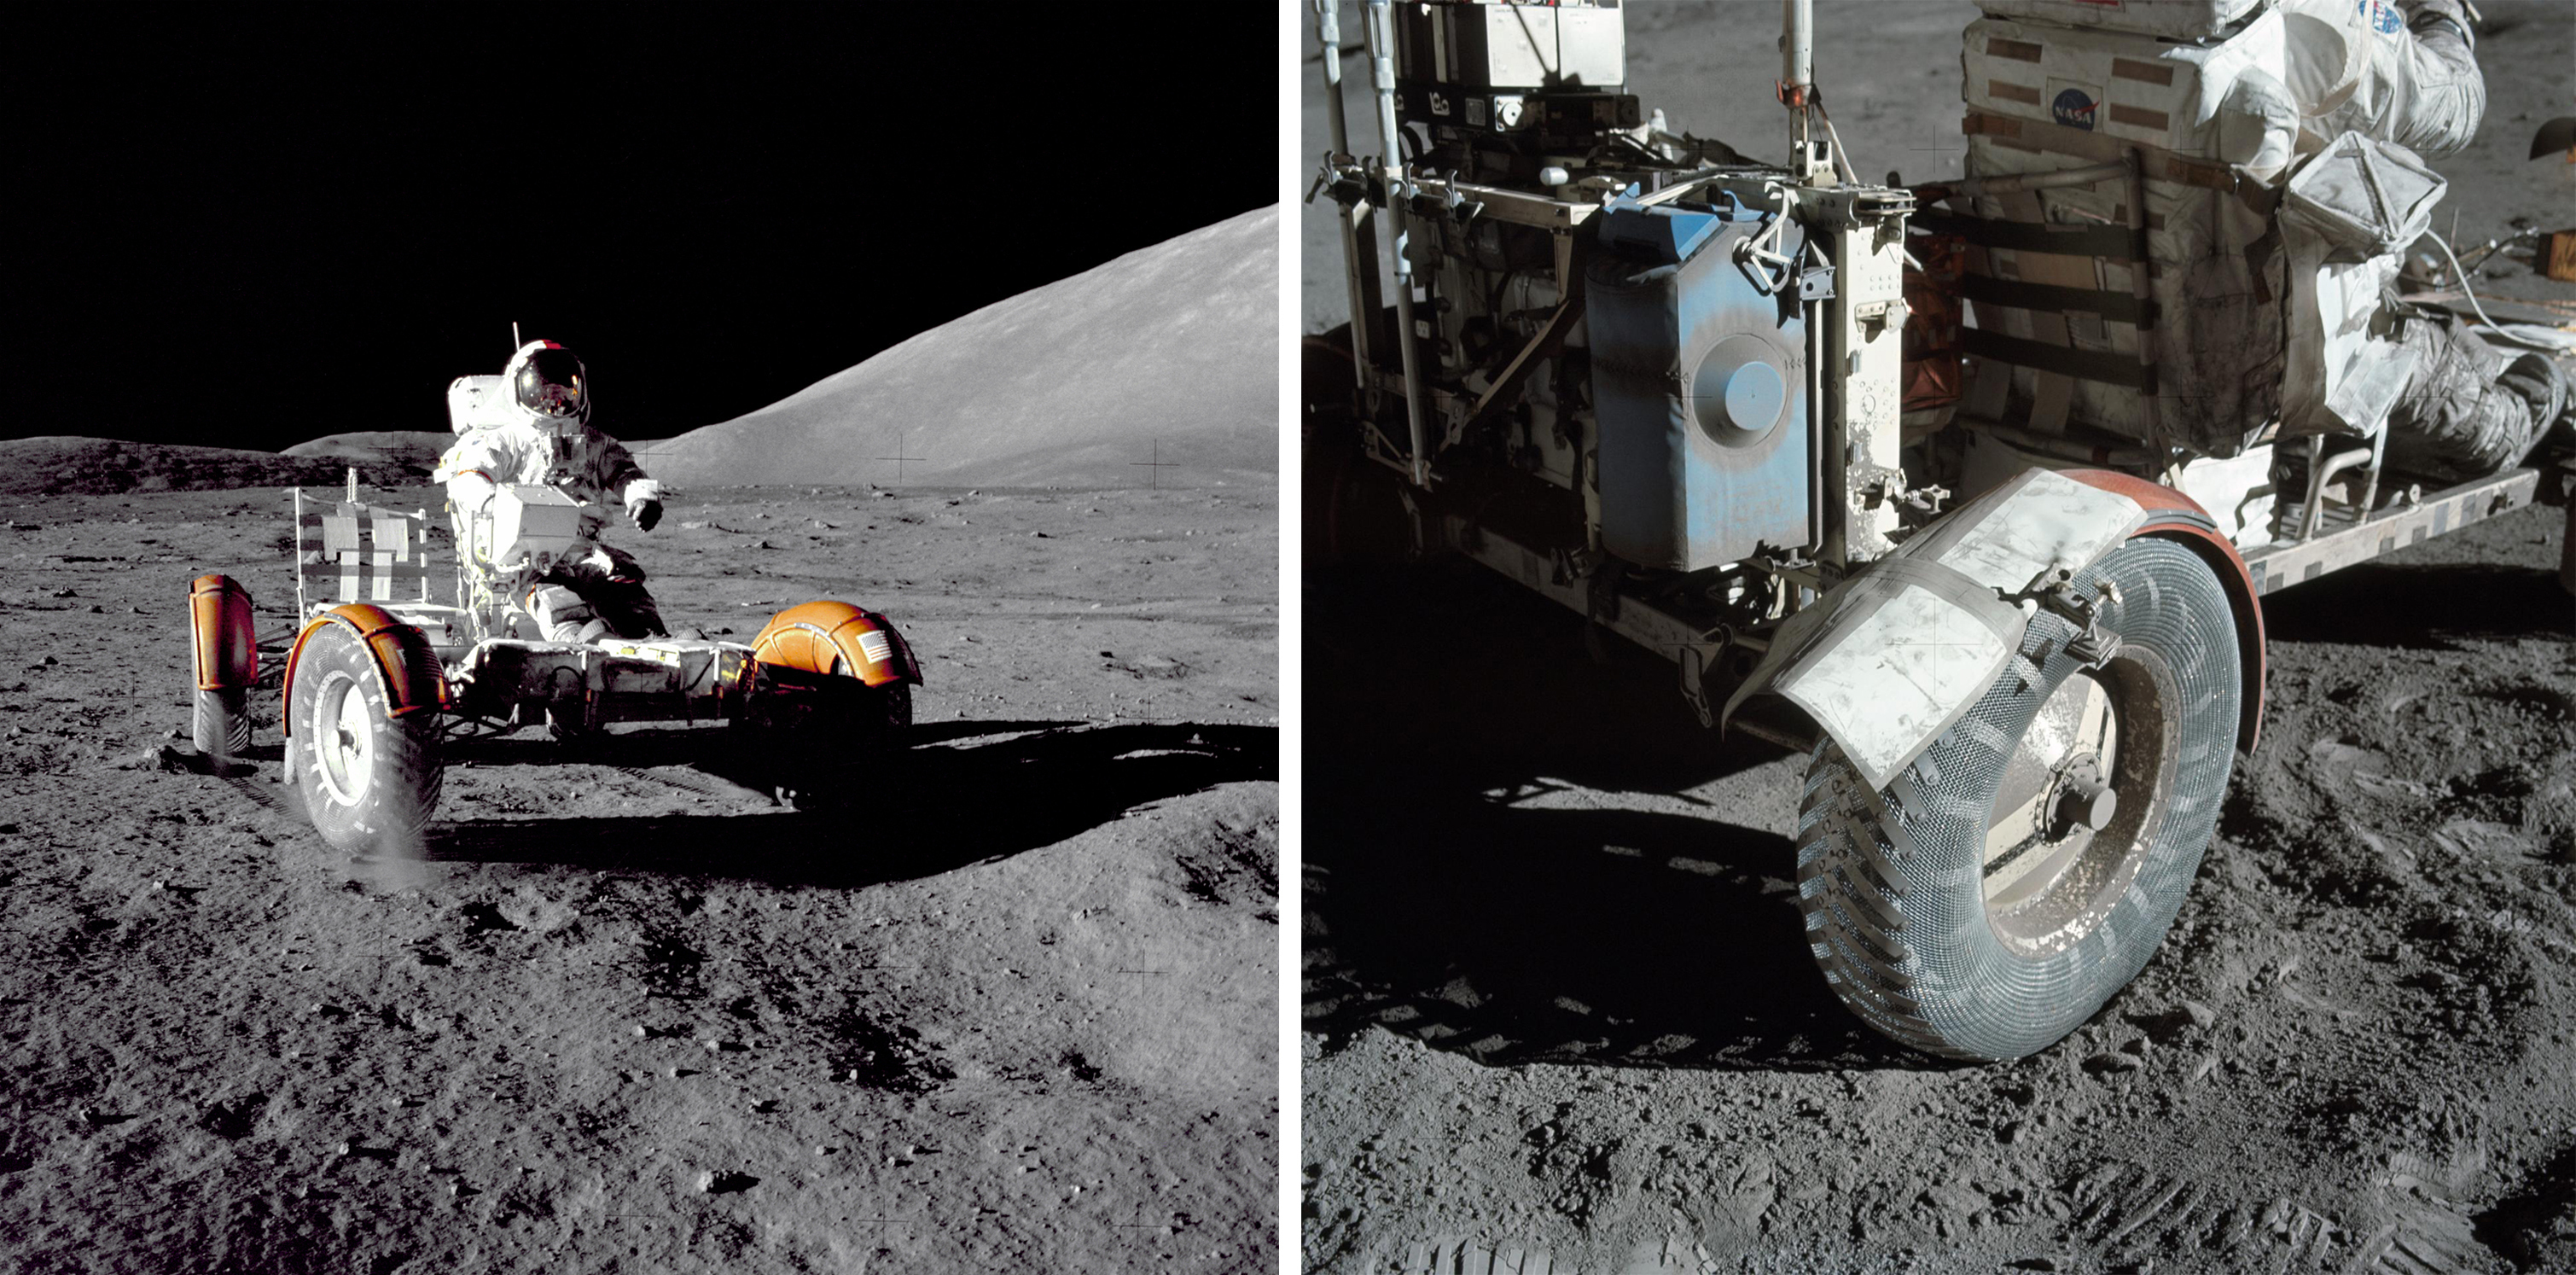 Apollo 17 mission commander Eugene A. Cernan makes a short checkout of the Lunar Roving Vehicle (shown in close-up at right) during the early part of the Apollo 17 extravehicular activity at the Taurus-Littrow landing site in 1972.